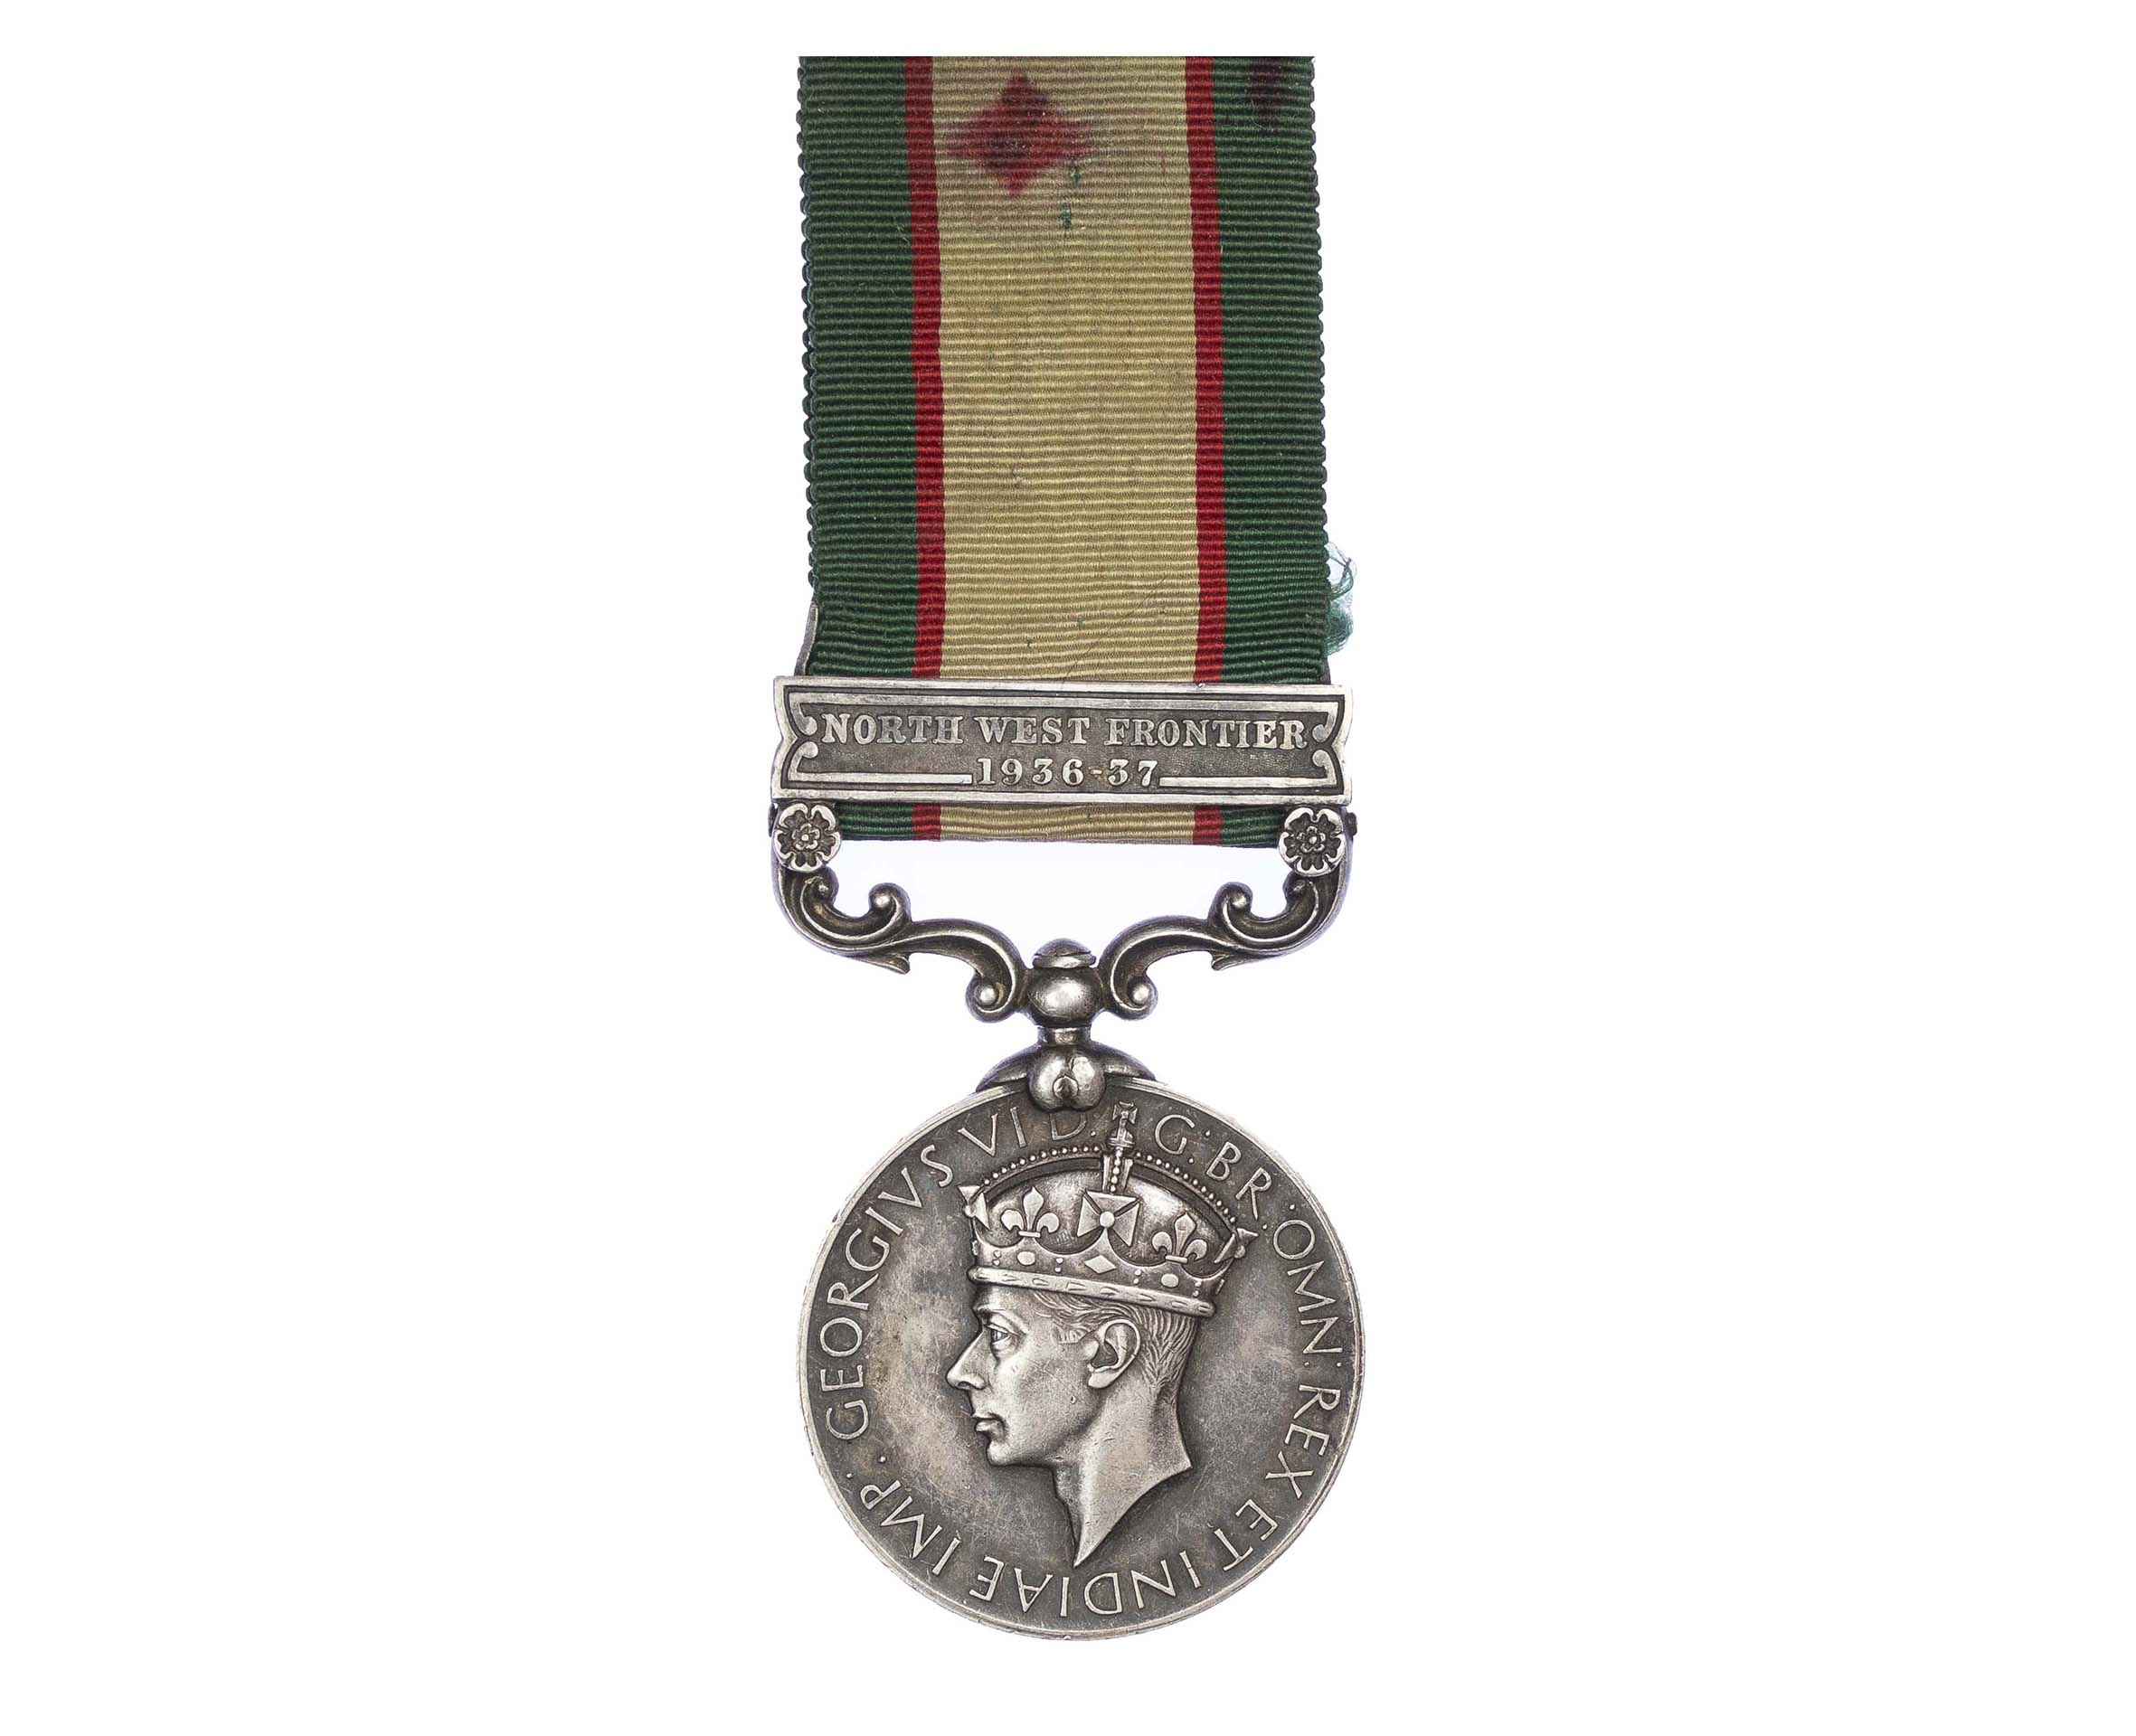 India General Service Medal 1936-1939, one clasp North West Frontier 1936-37, to Havildar Mohd Zaman